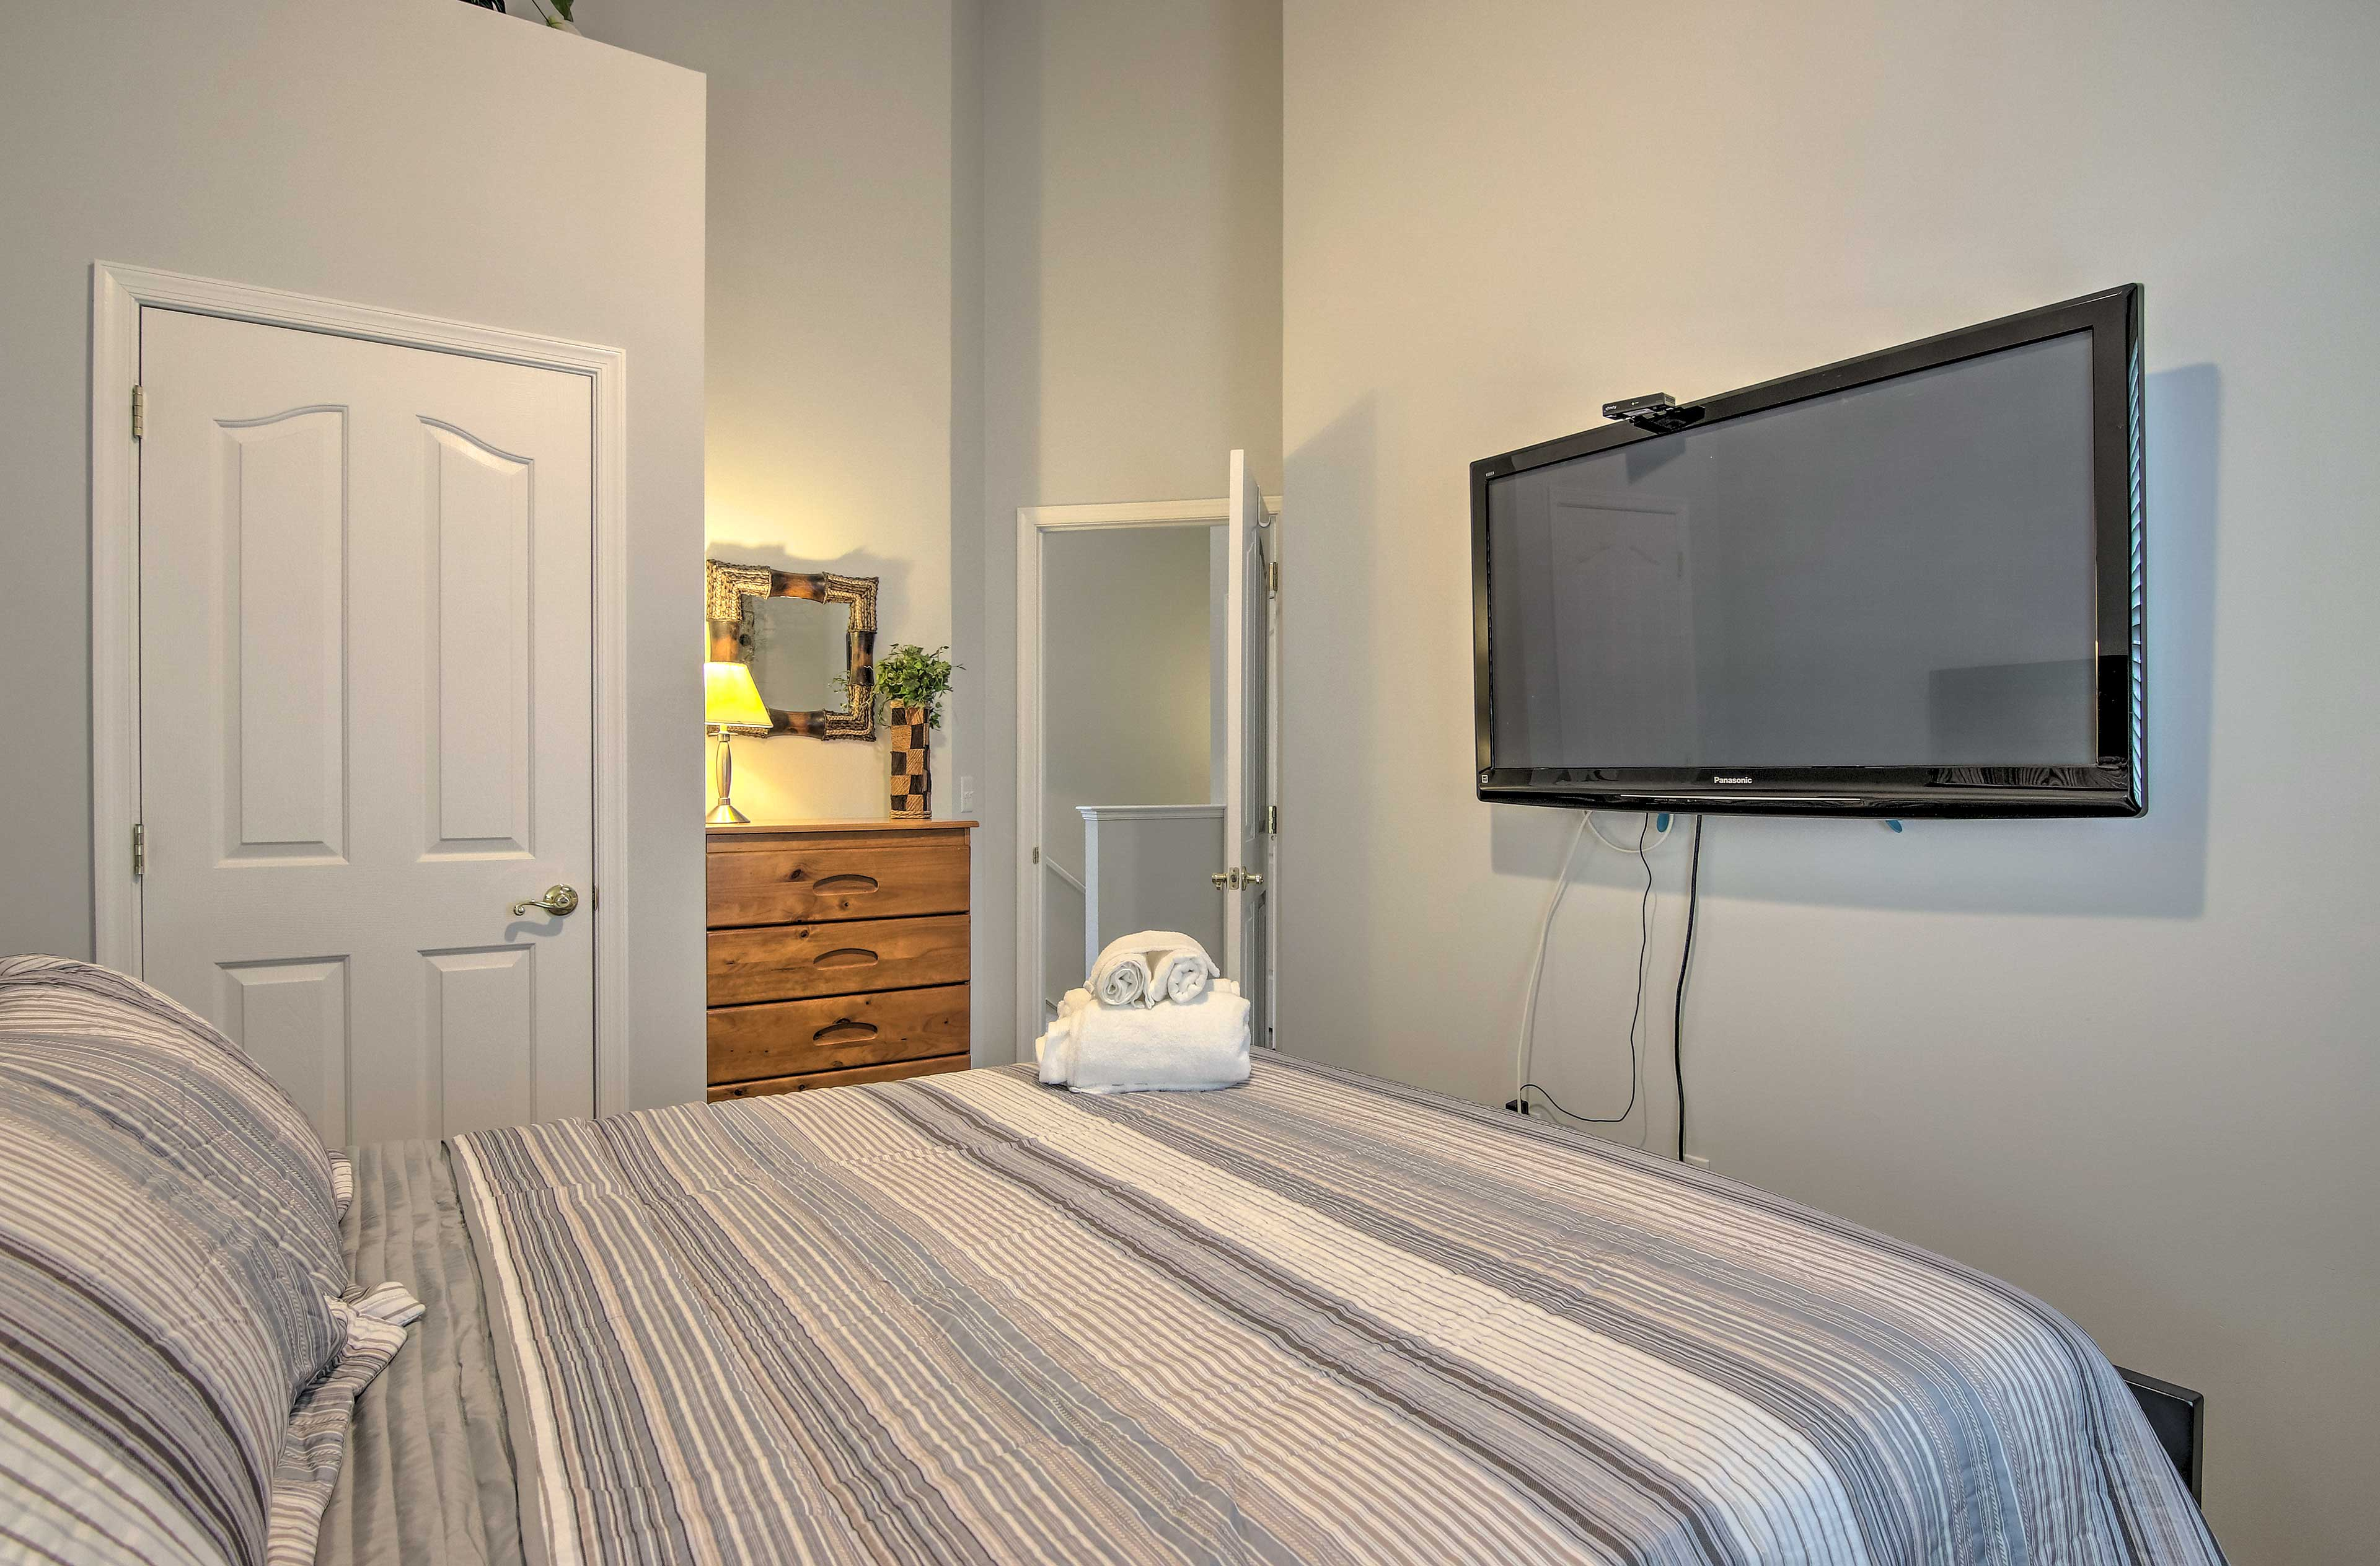 This room also has a flat-screen TV.